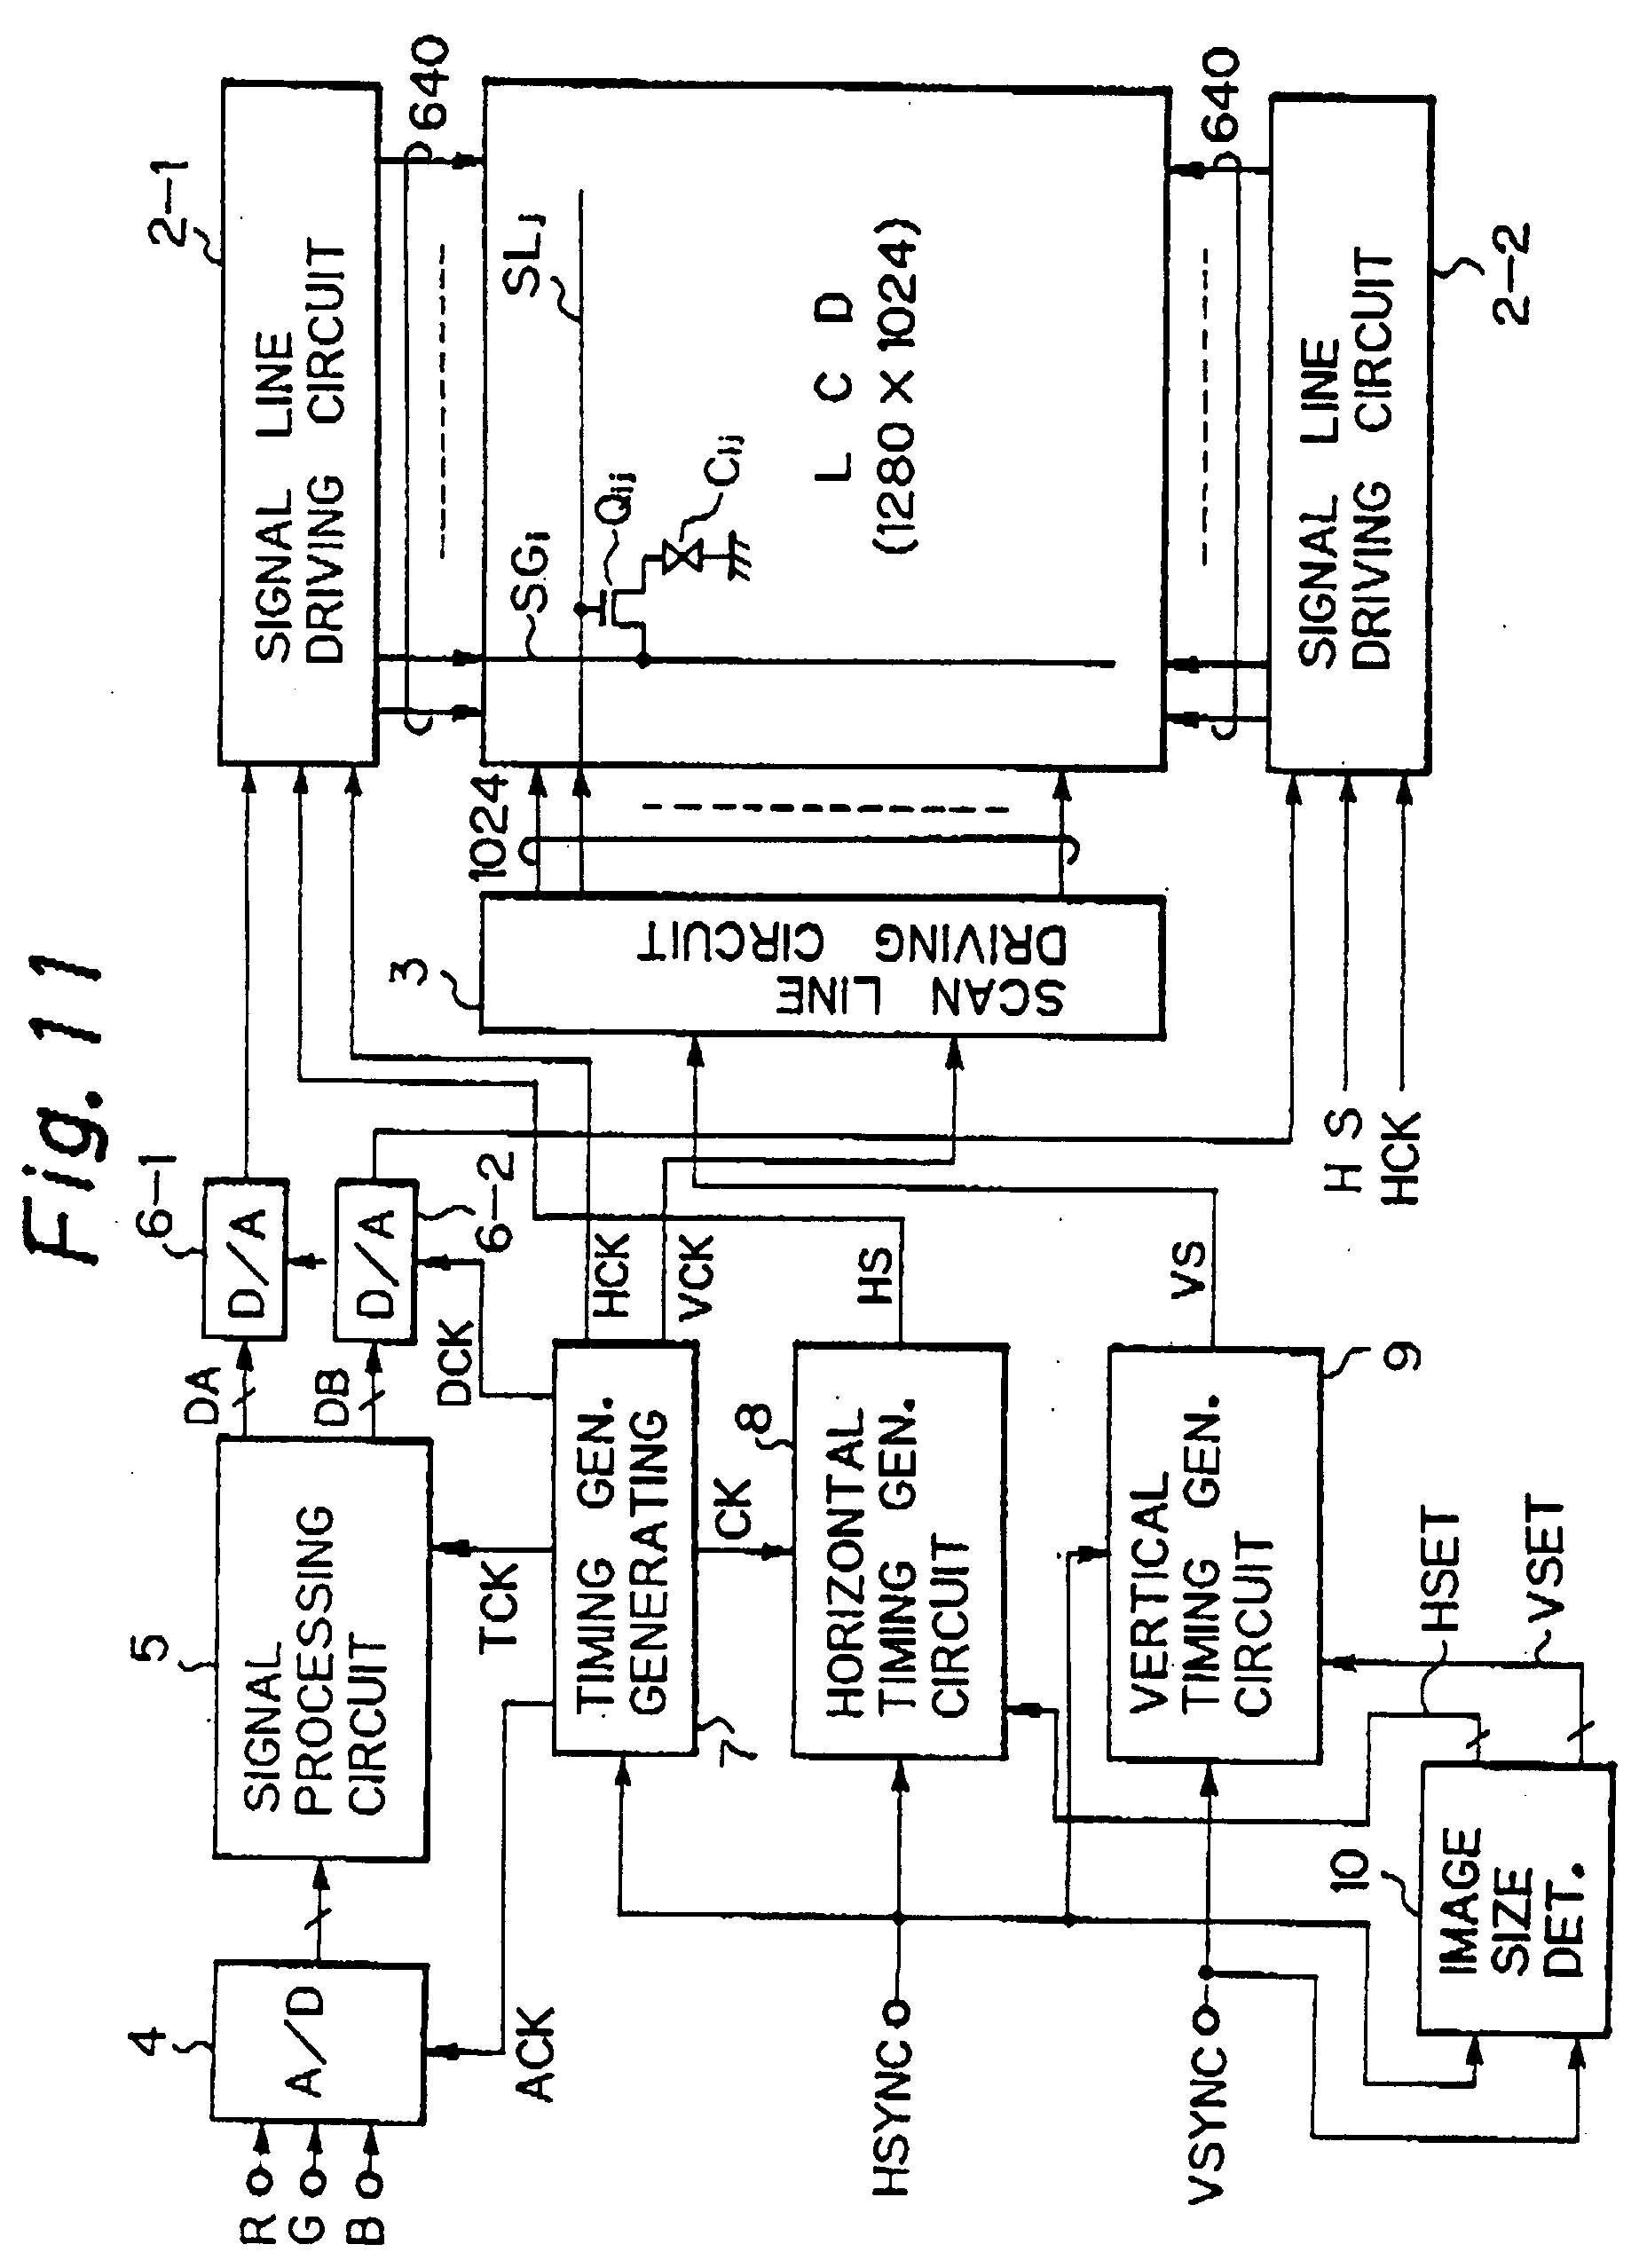 Drawing Lines In Crystal Reports : Patent ep a apparatus for driving liquid crystal